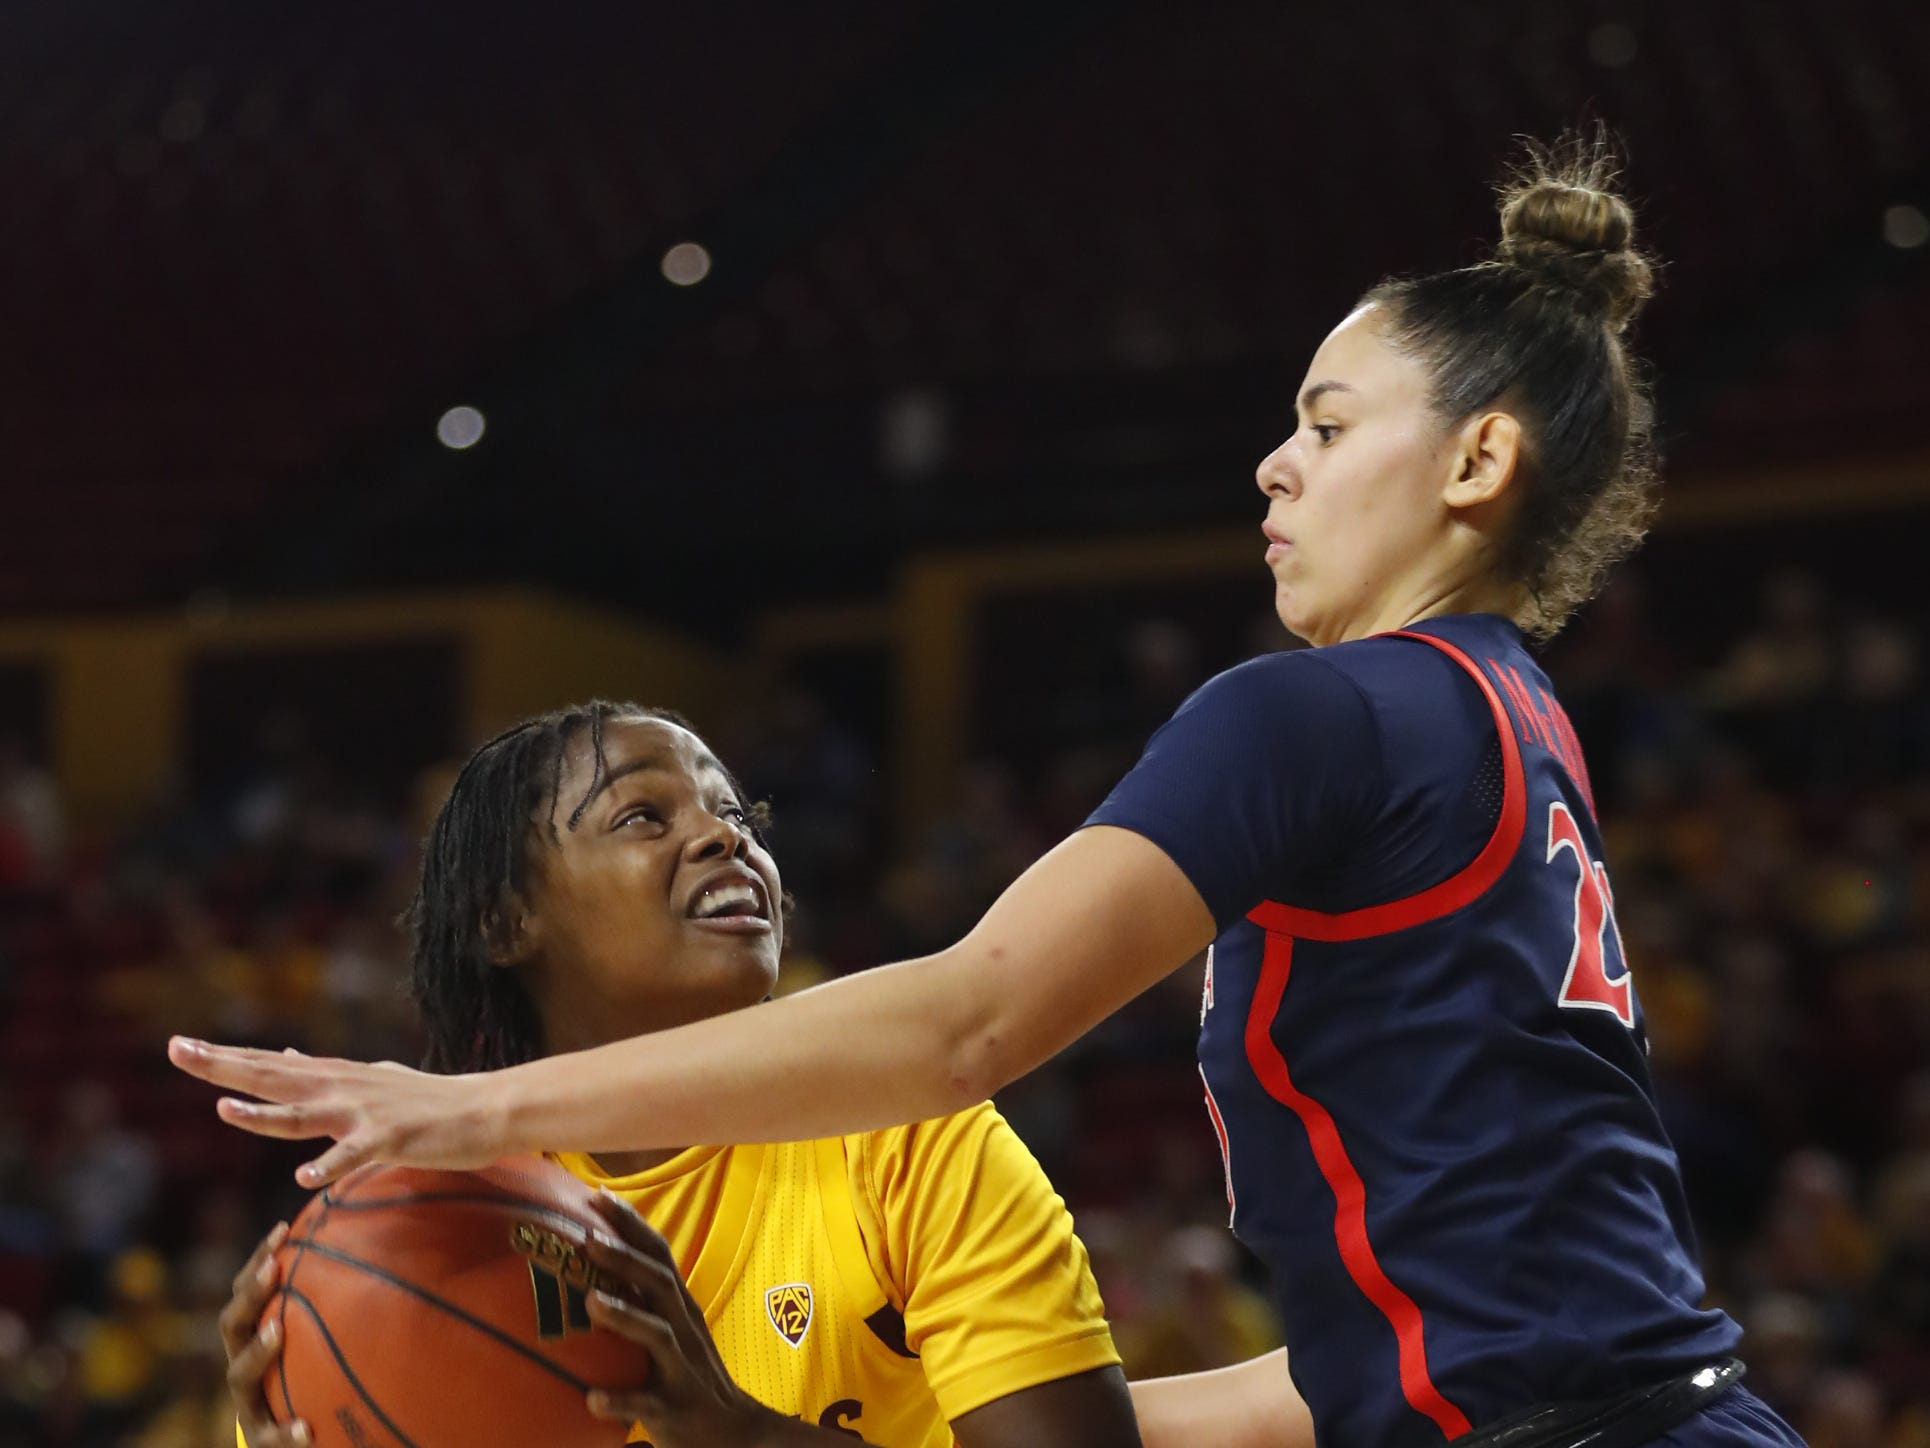 ASU's Charnea Johnson-Chapman (33) goes up for a basket against Arizona's Dominique McBryde (20) during the second half at Wells Fargo Arena in Tempe, Ariz. on February 1, 2019.